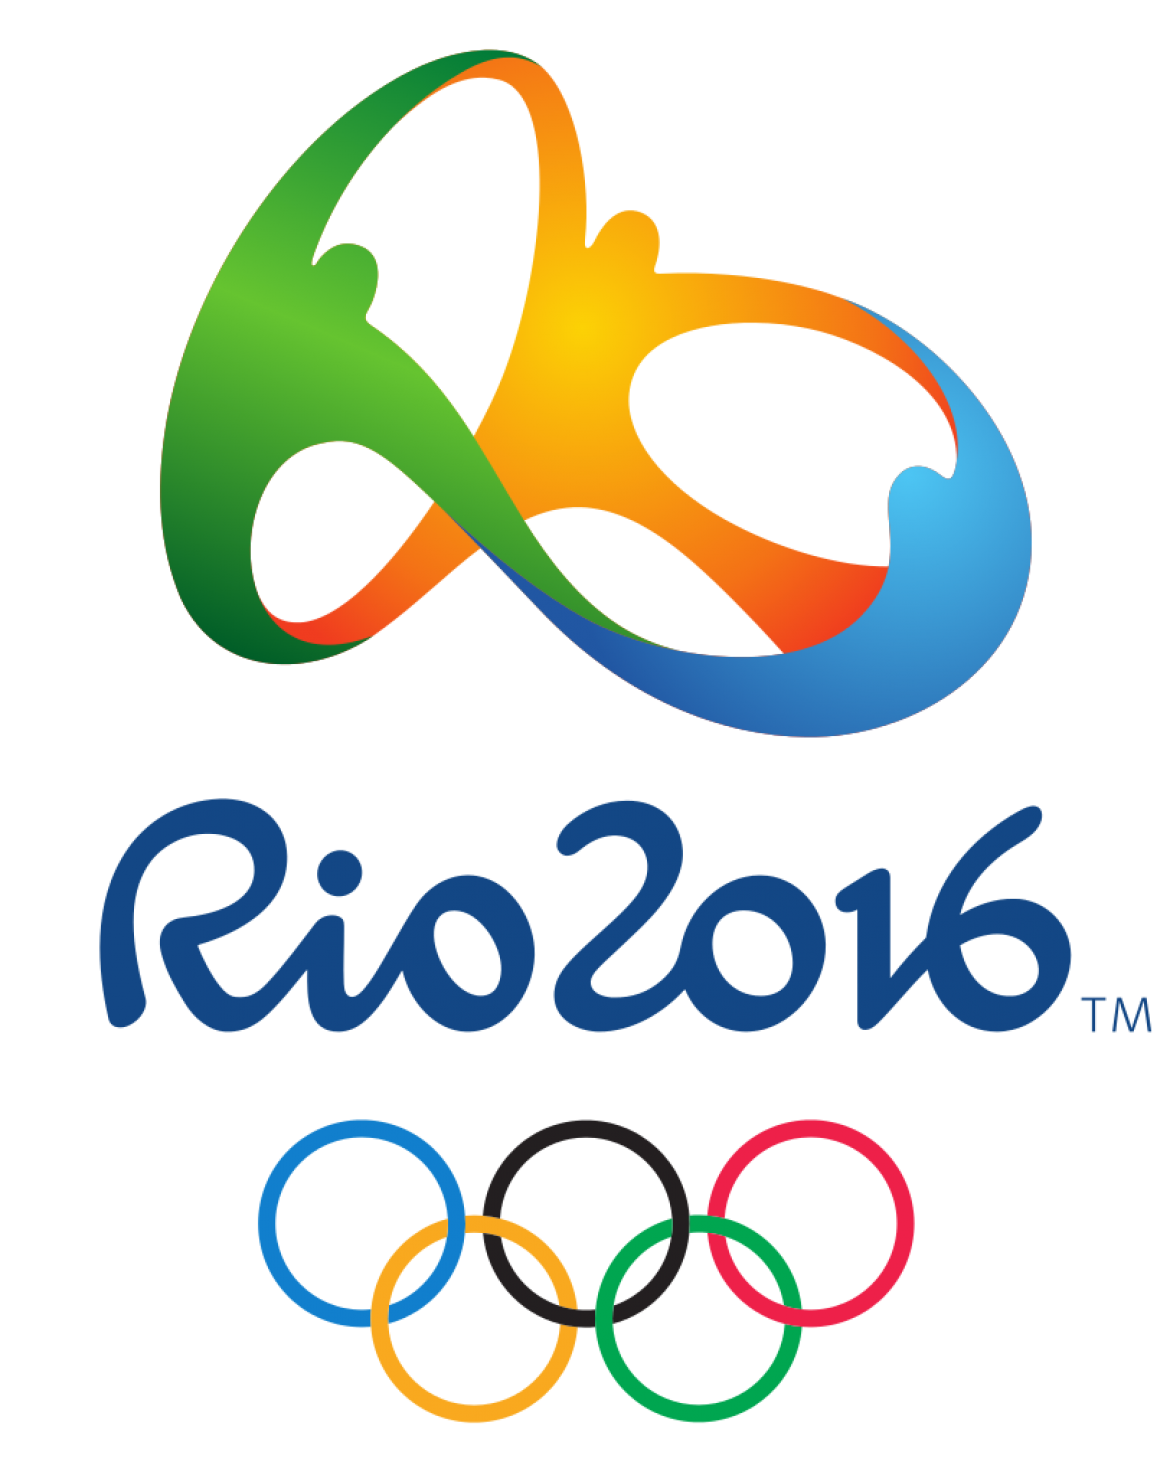 Increasing revenues by ranking and other ways to make money from Rio Olympics 2016